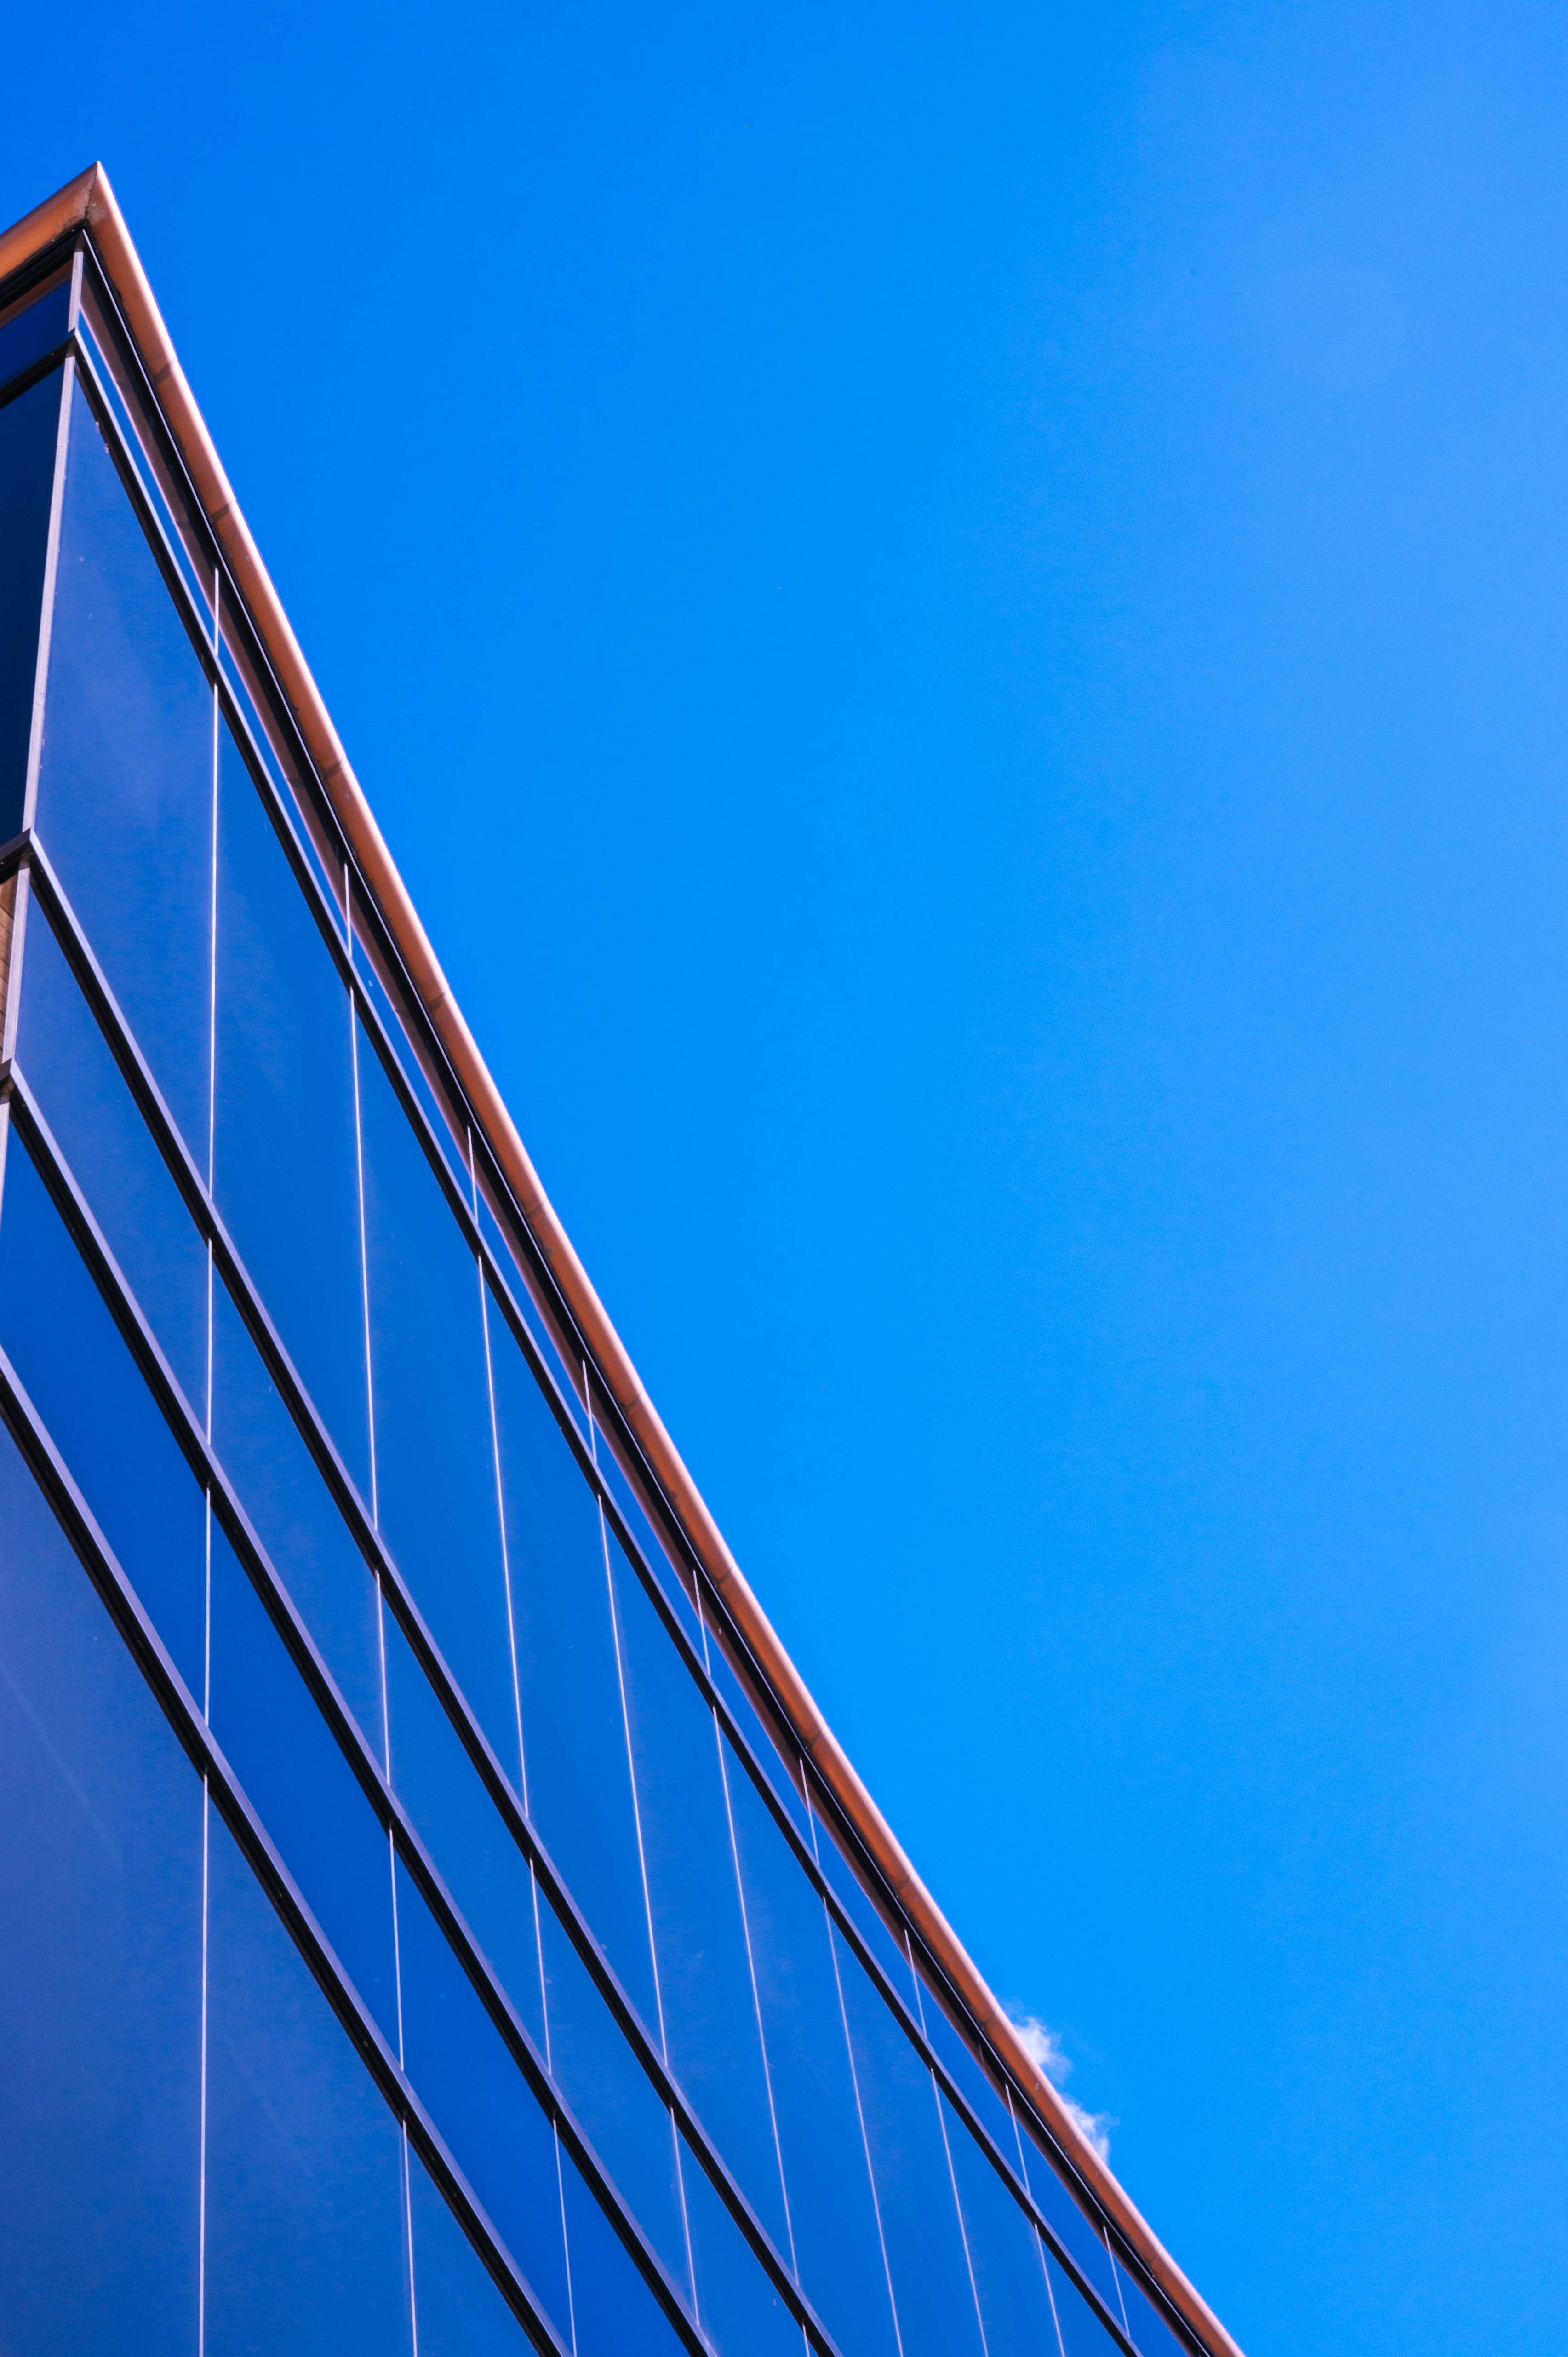 Architectural Photography Of Curtain Glass Building